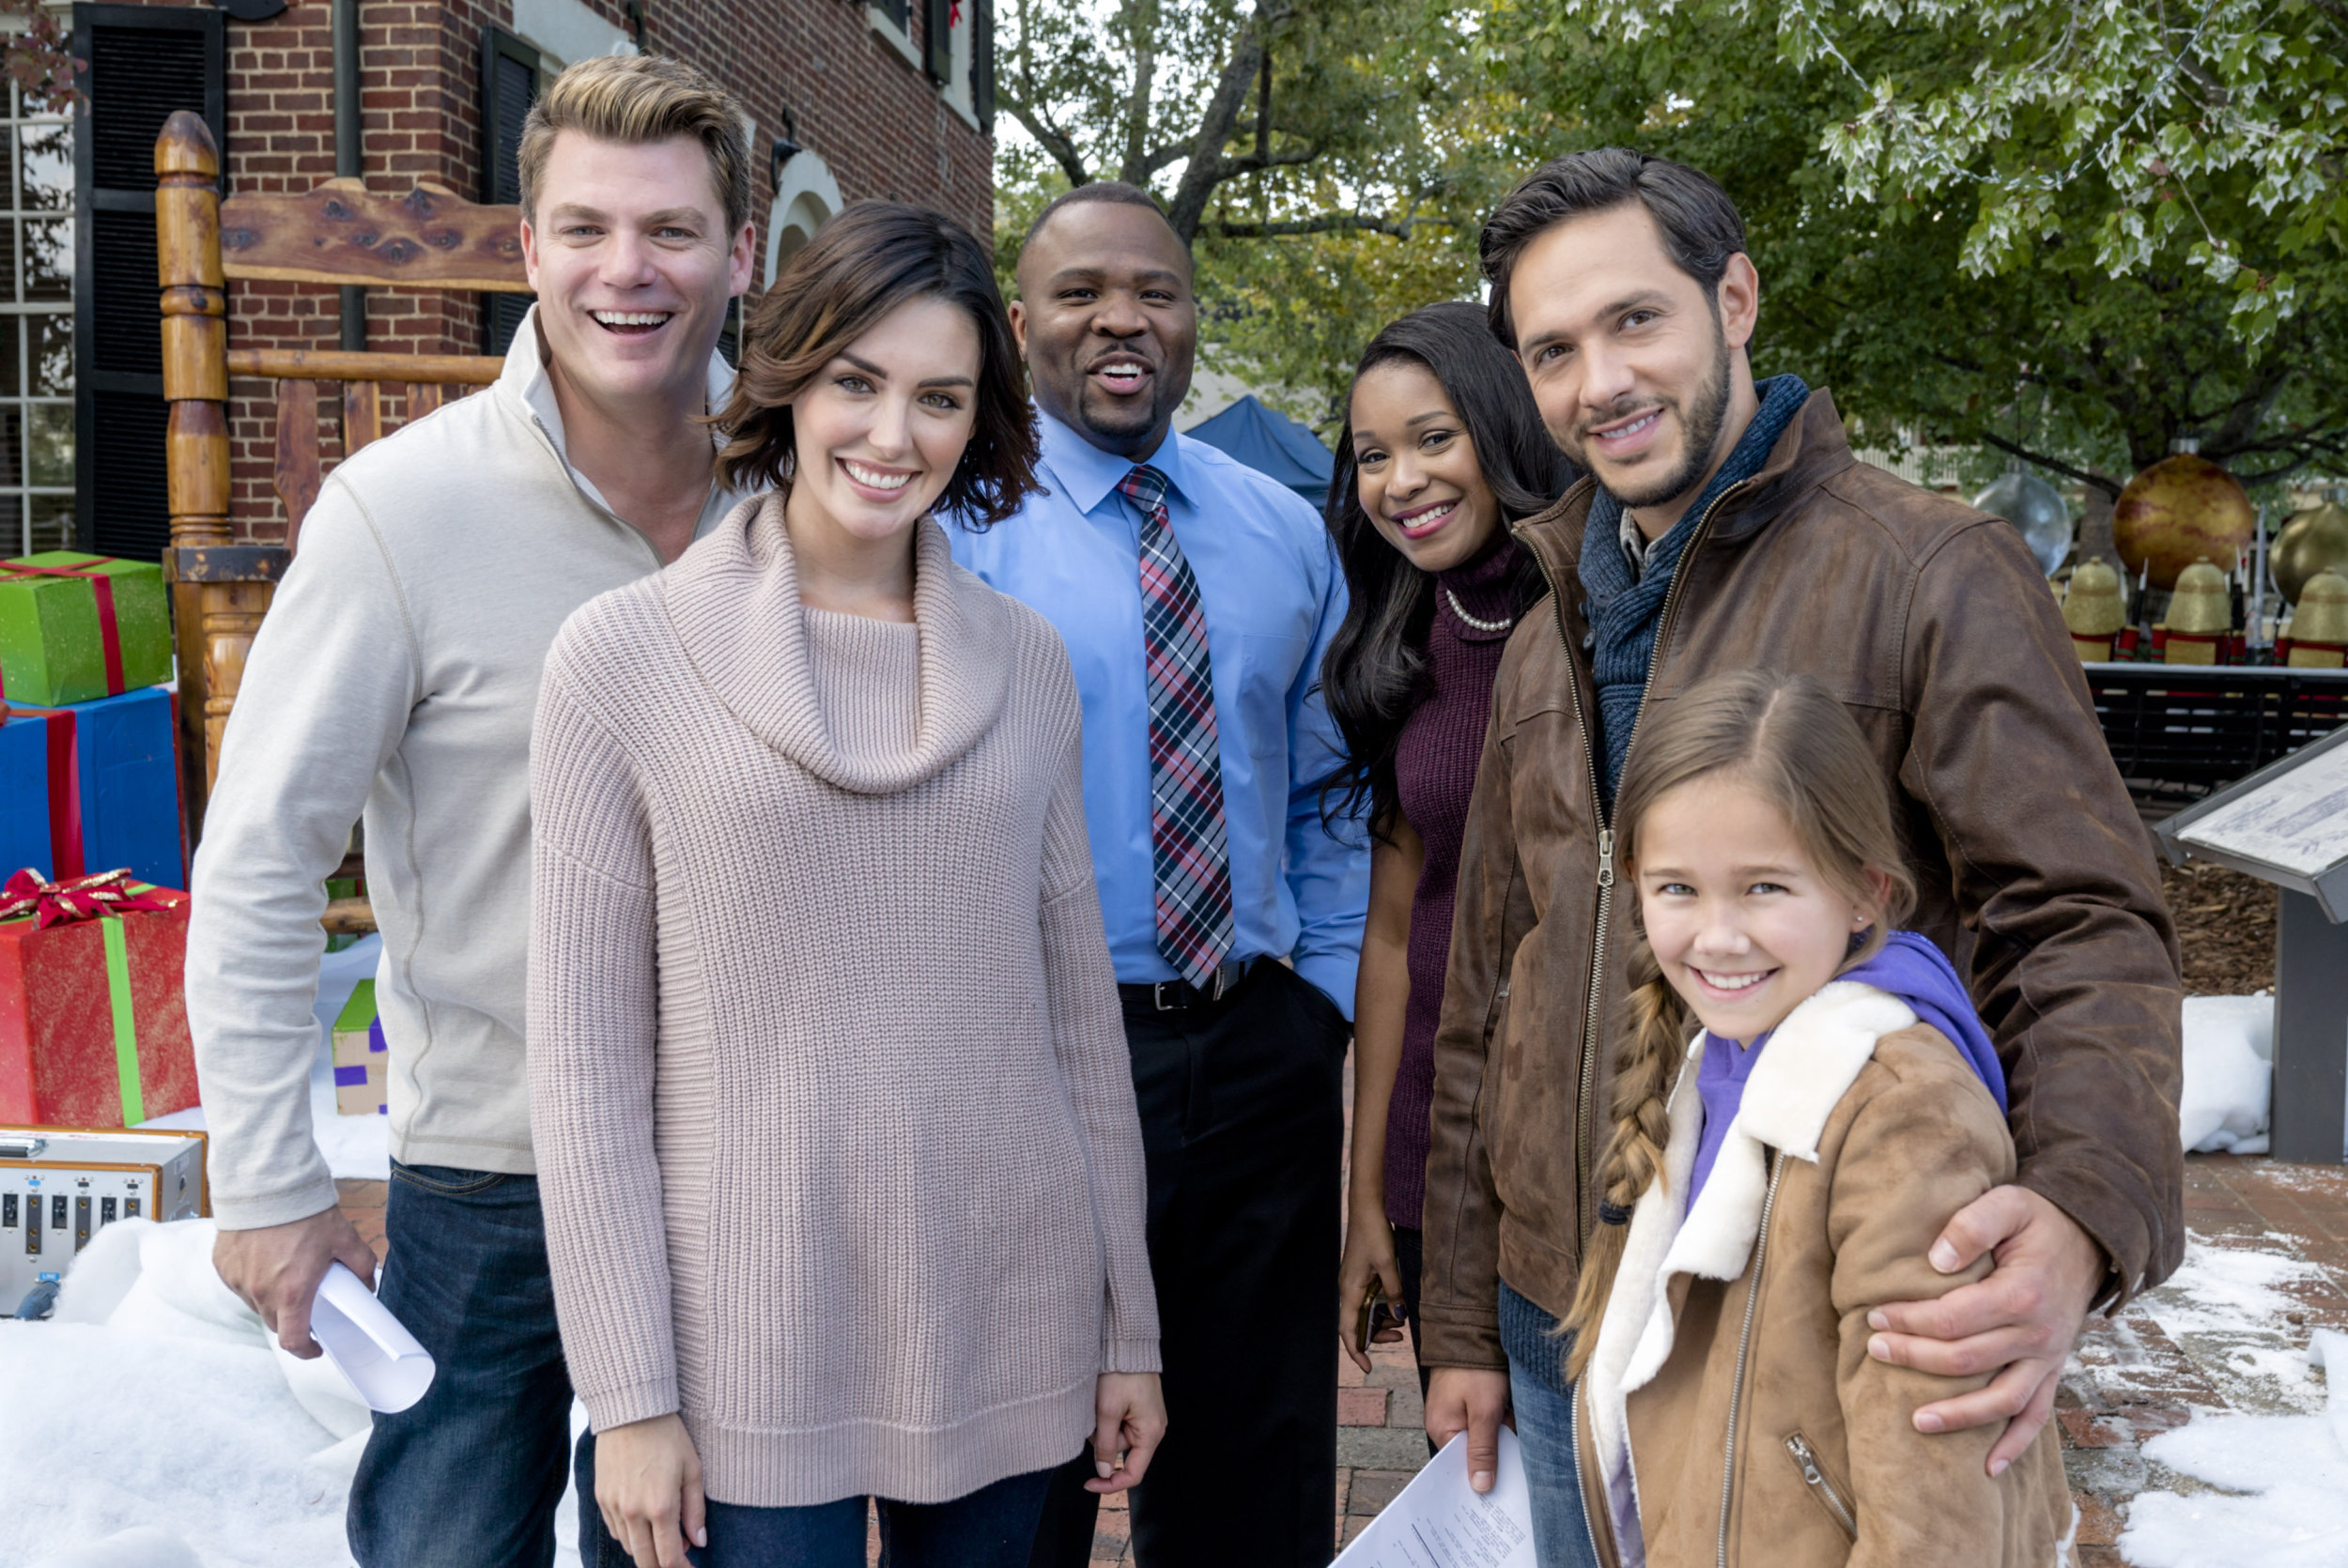 Ritzy Crew Hallmark About Homestead Cast Homestead Cast Homestead Hallmark Channel curbed Christmas In Homestead Cast